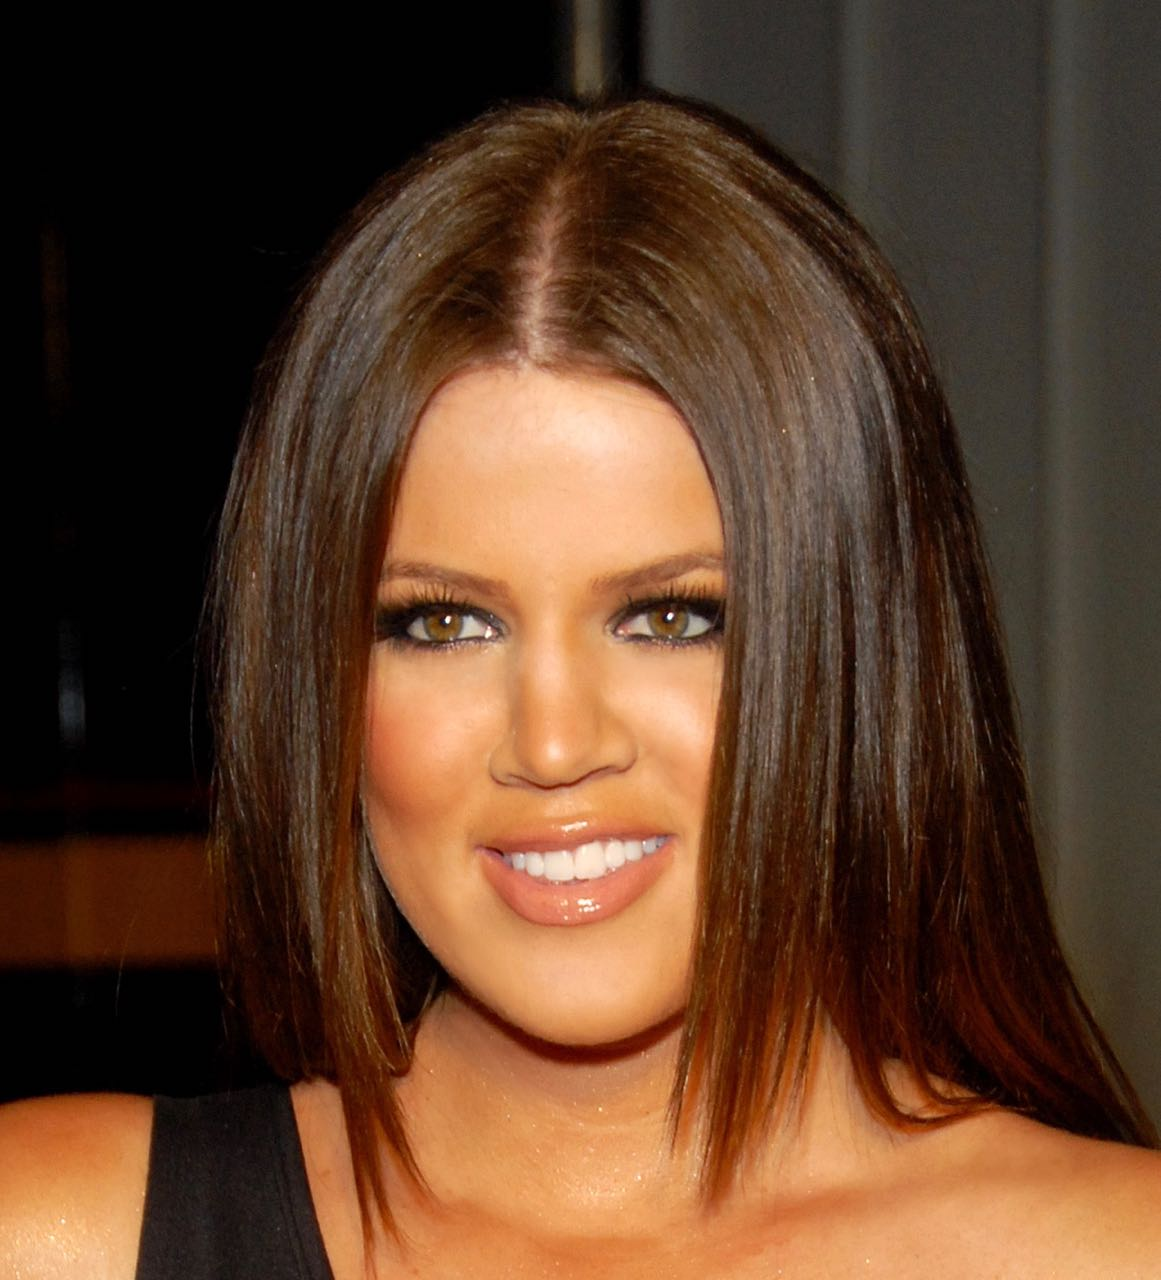 Khloe Kardashian, By Toglenn - Own work, CC BY-SA 3.0